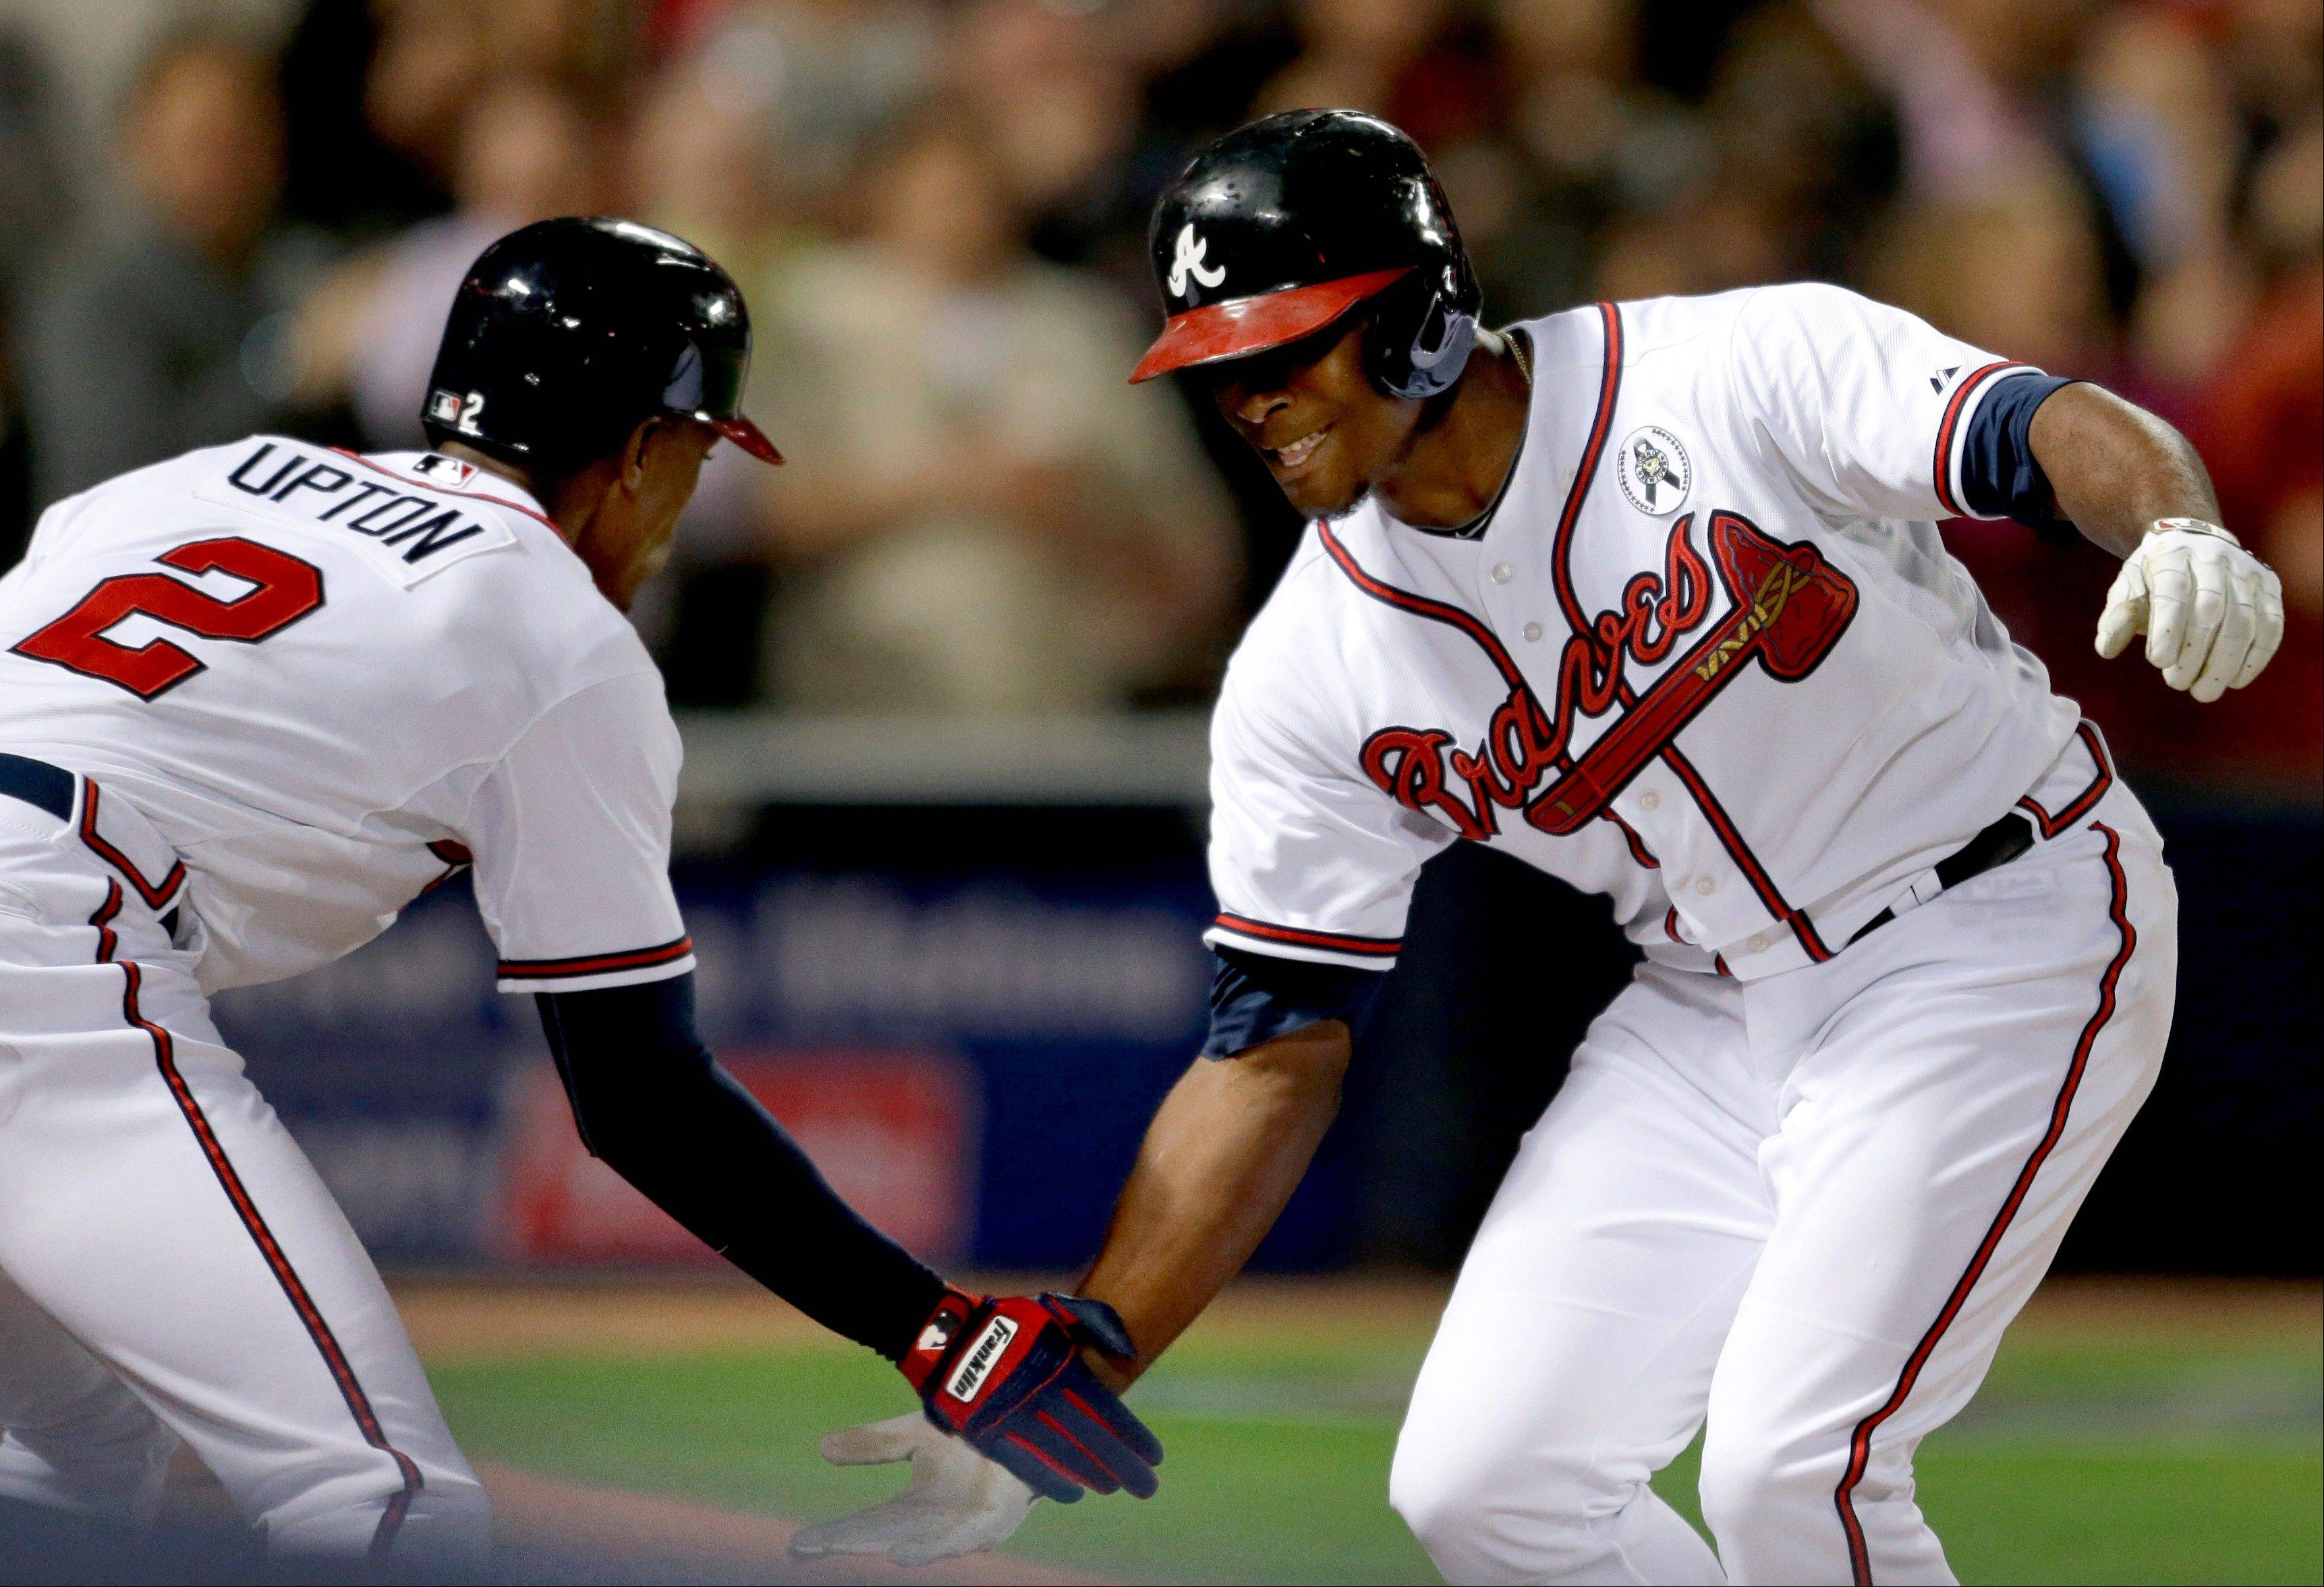 The Braves� Justin Upton, right, high-fives his brother and teammate B.J. Upton after hitting a home run in the fifth inning Monday against the Phillies.